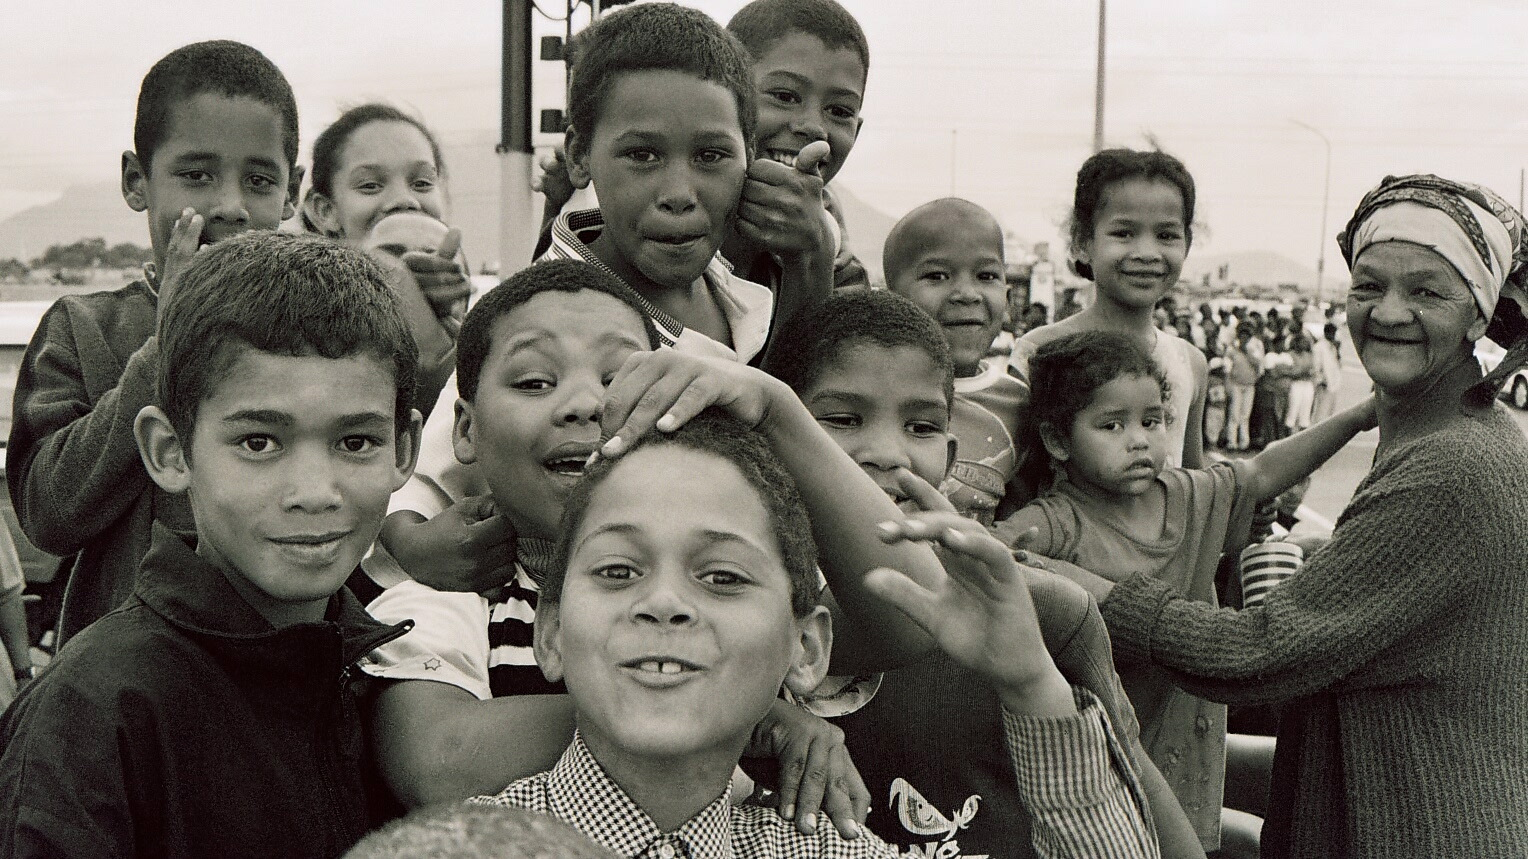 Cape Coloured children from Bonteheuwel township, Cape Town, South Africa. Coloured is considered a neutral term in South Africa to address mixed-race populations.